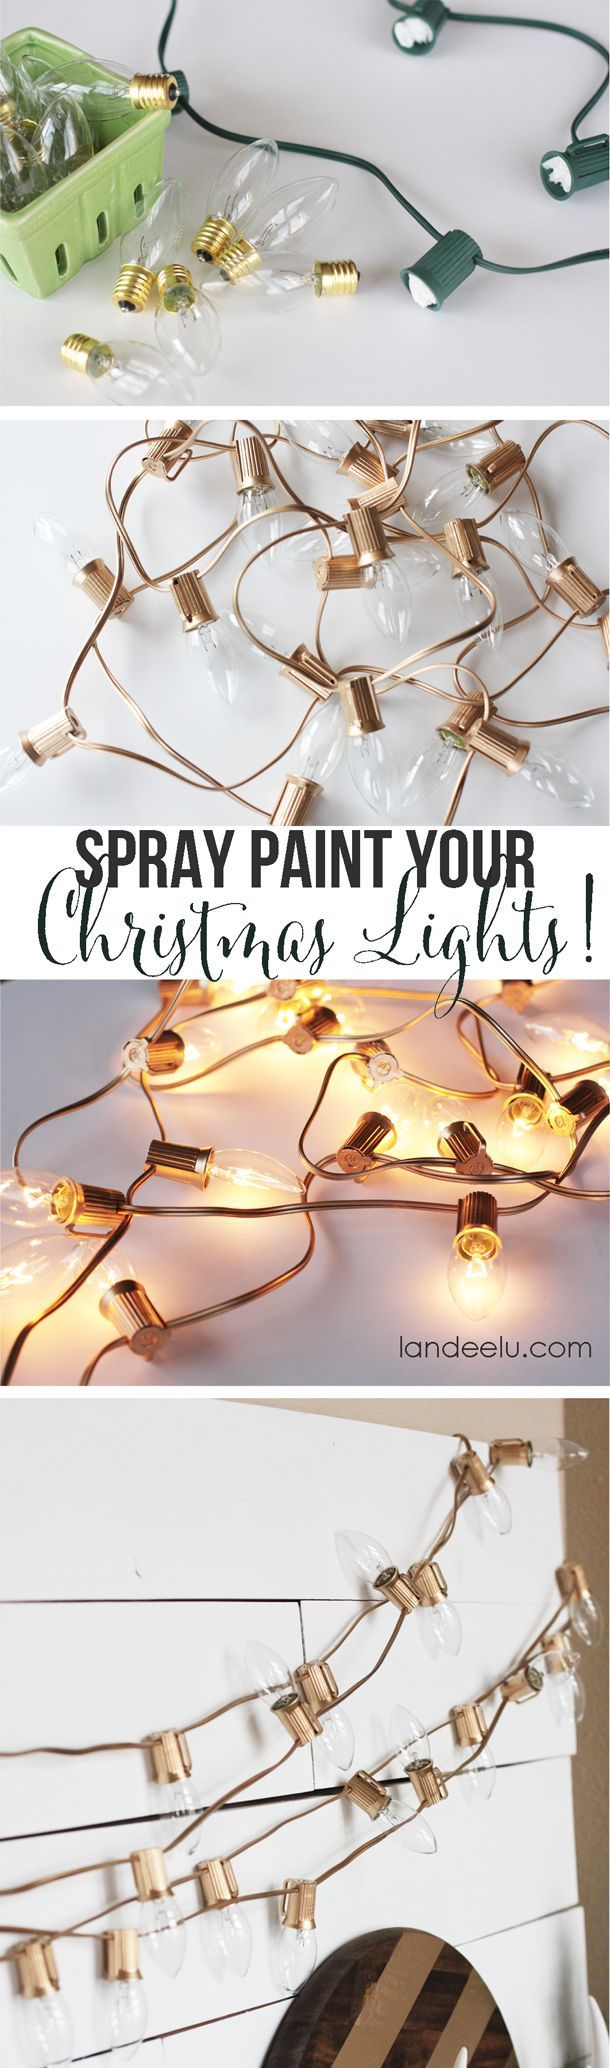 Spray Paint Your Christmas Lights Gold or Silver or whatever color you want!  Who would have thought!  EASY tutorial  |  landeelu.com